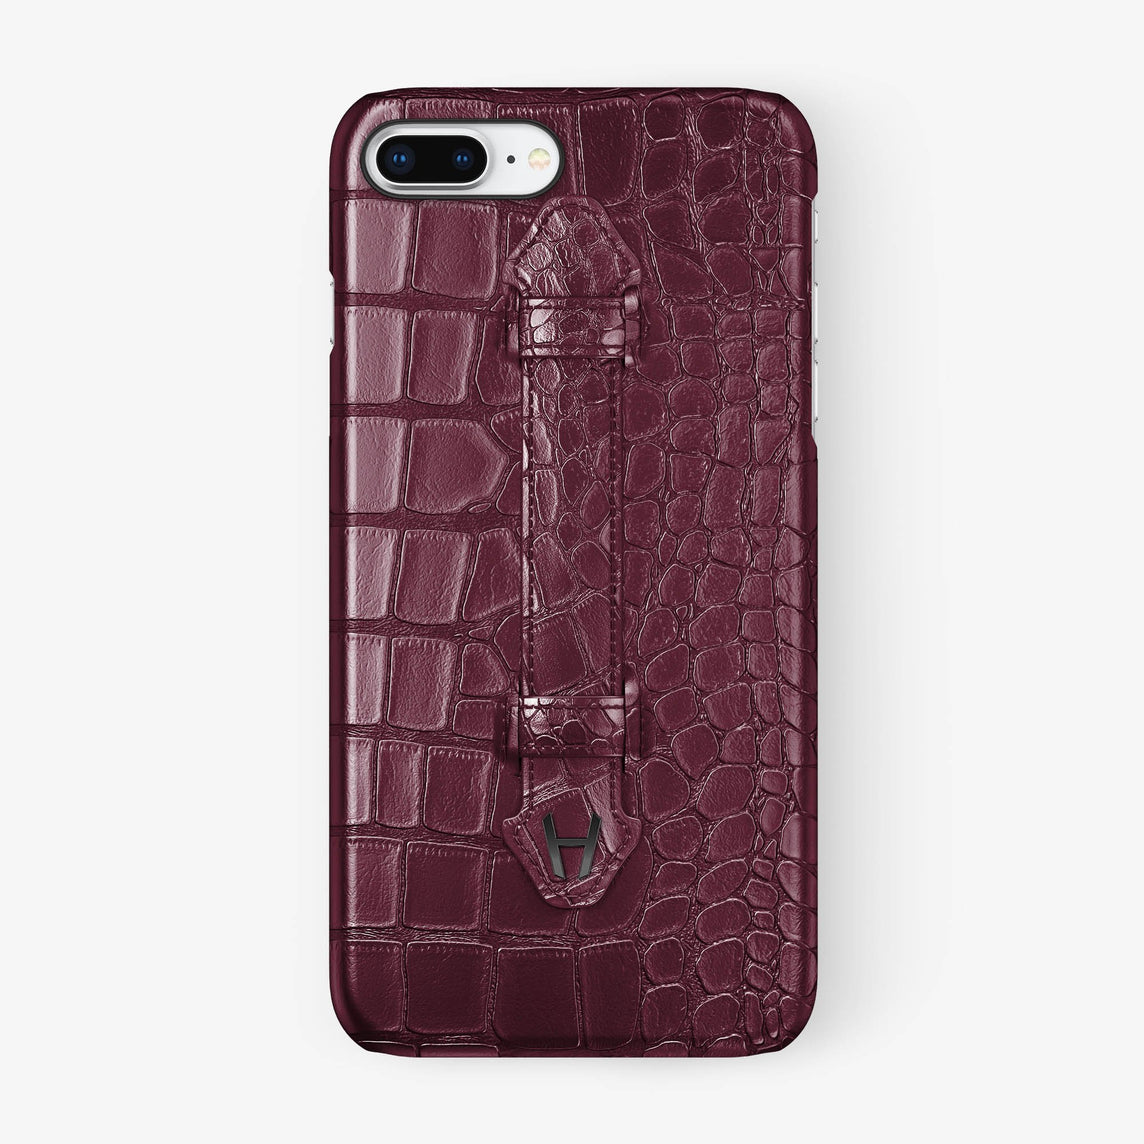 Alligator Finger Case iPhone 7/8 Plus | Burgundy - Black